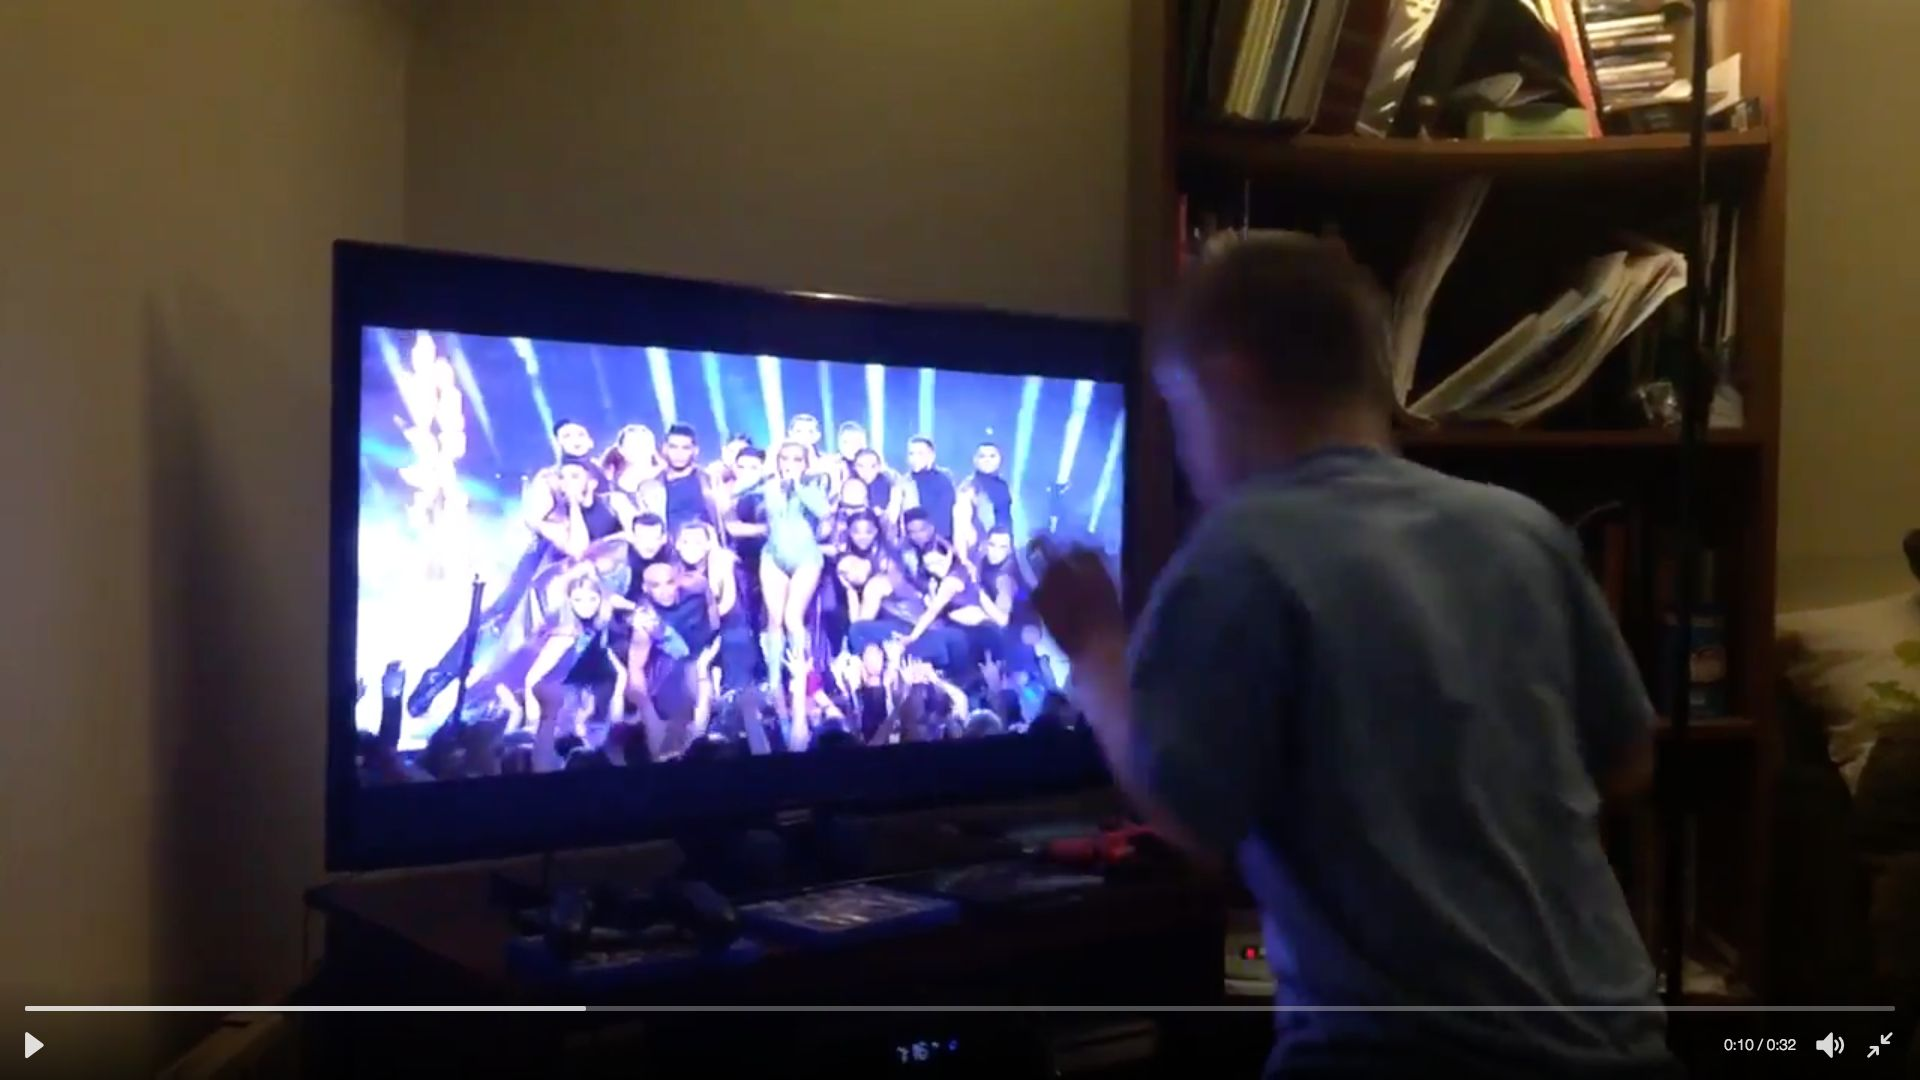 Nico a 10-year-old boy with Down syndrome is seen dancing along to Lady Gagas Born This Way